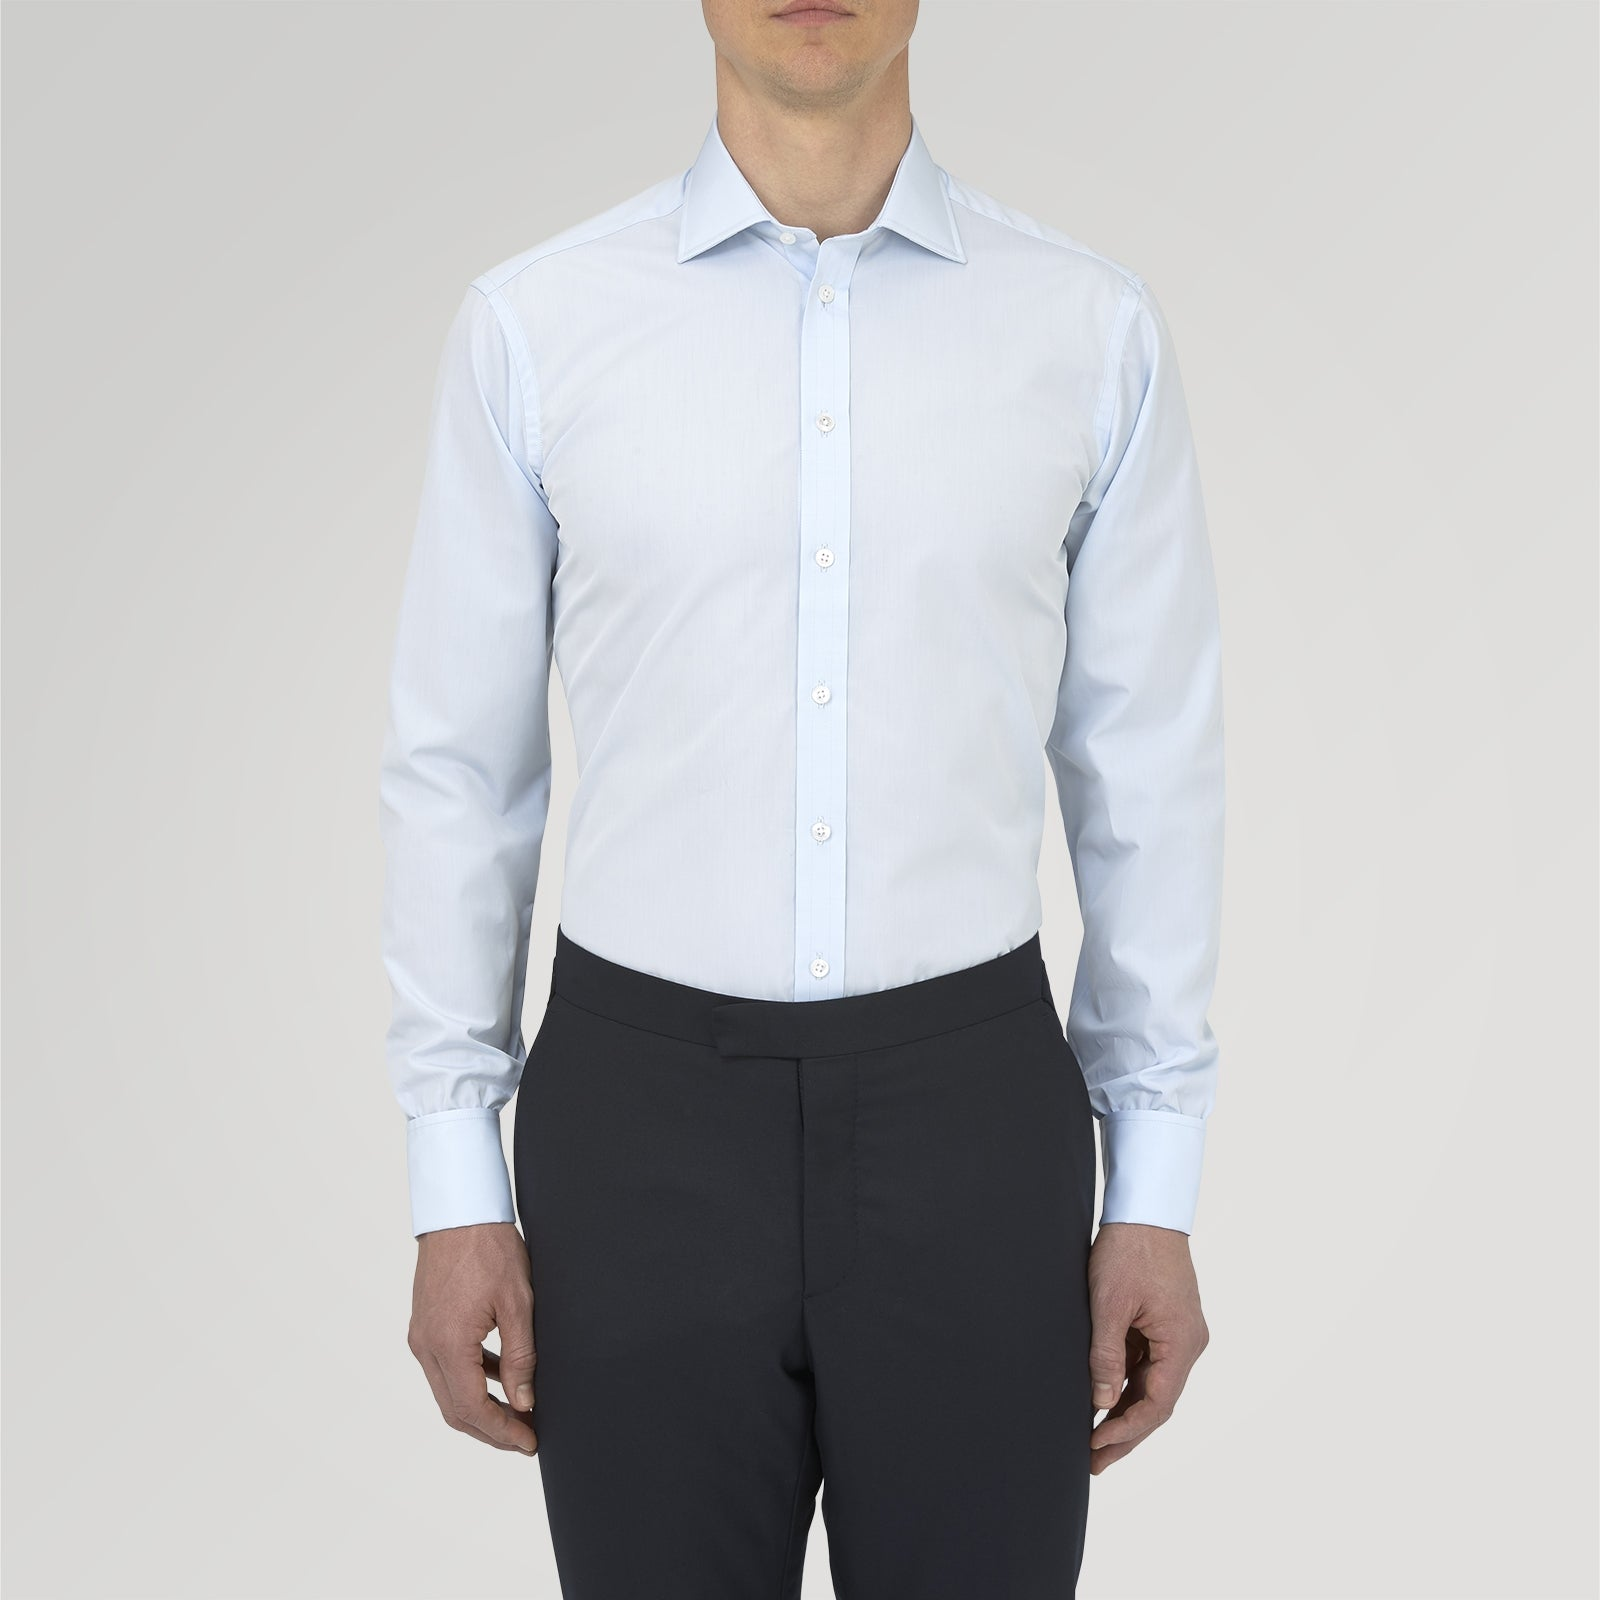 Two-Fold 120 Light Blue Shirt with Regent Collar and Double Cuffs